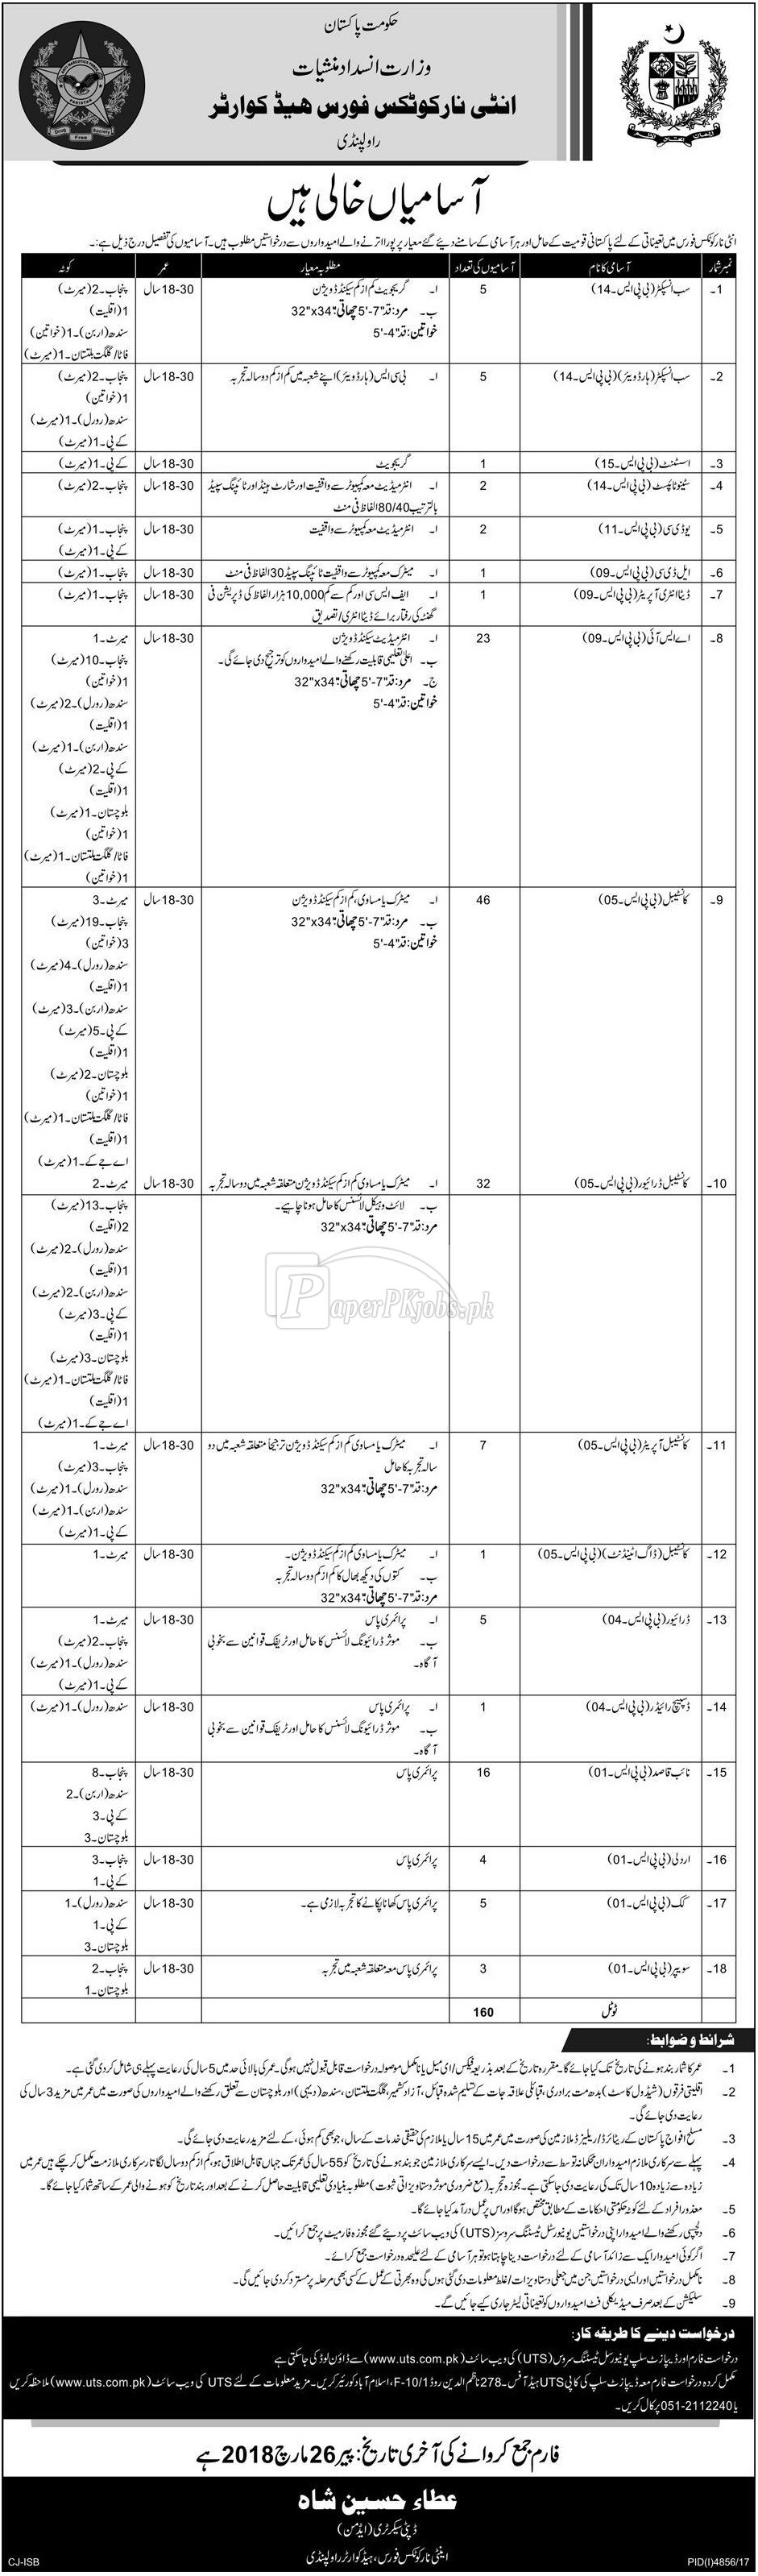 Ministry of Narcotics Control Jobs 2018